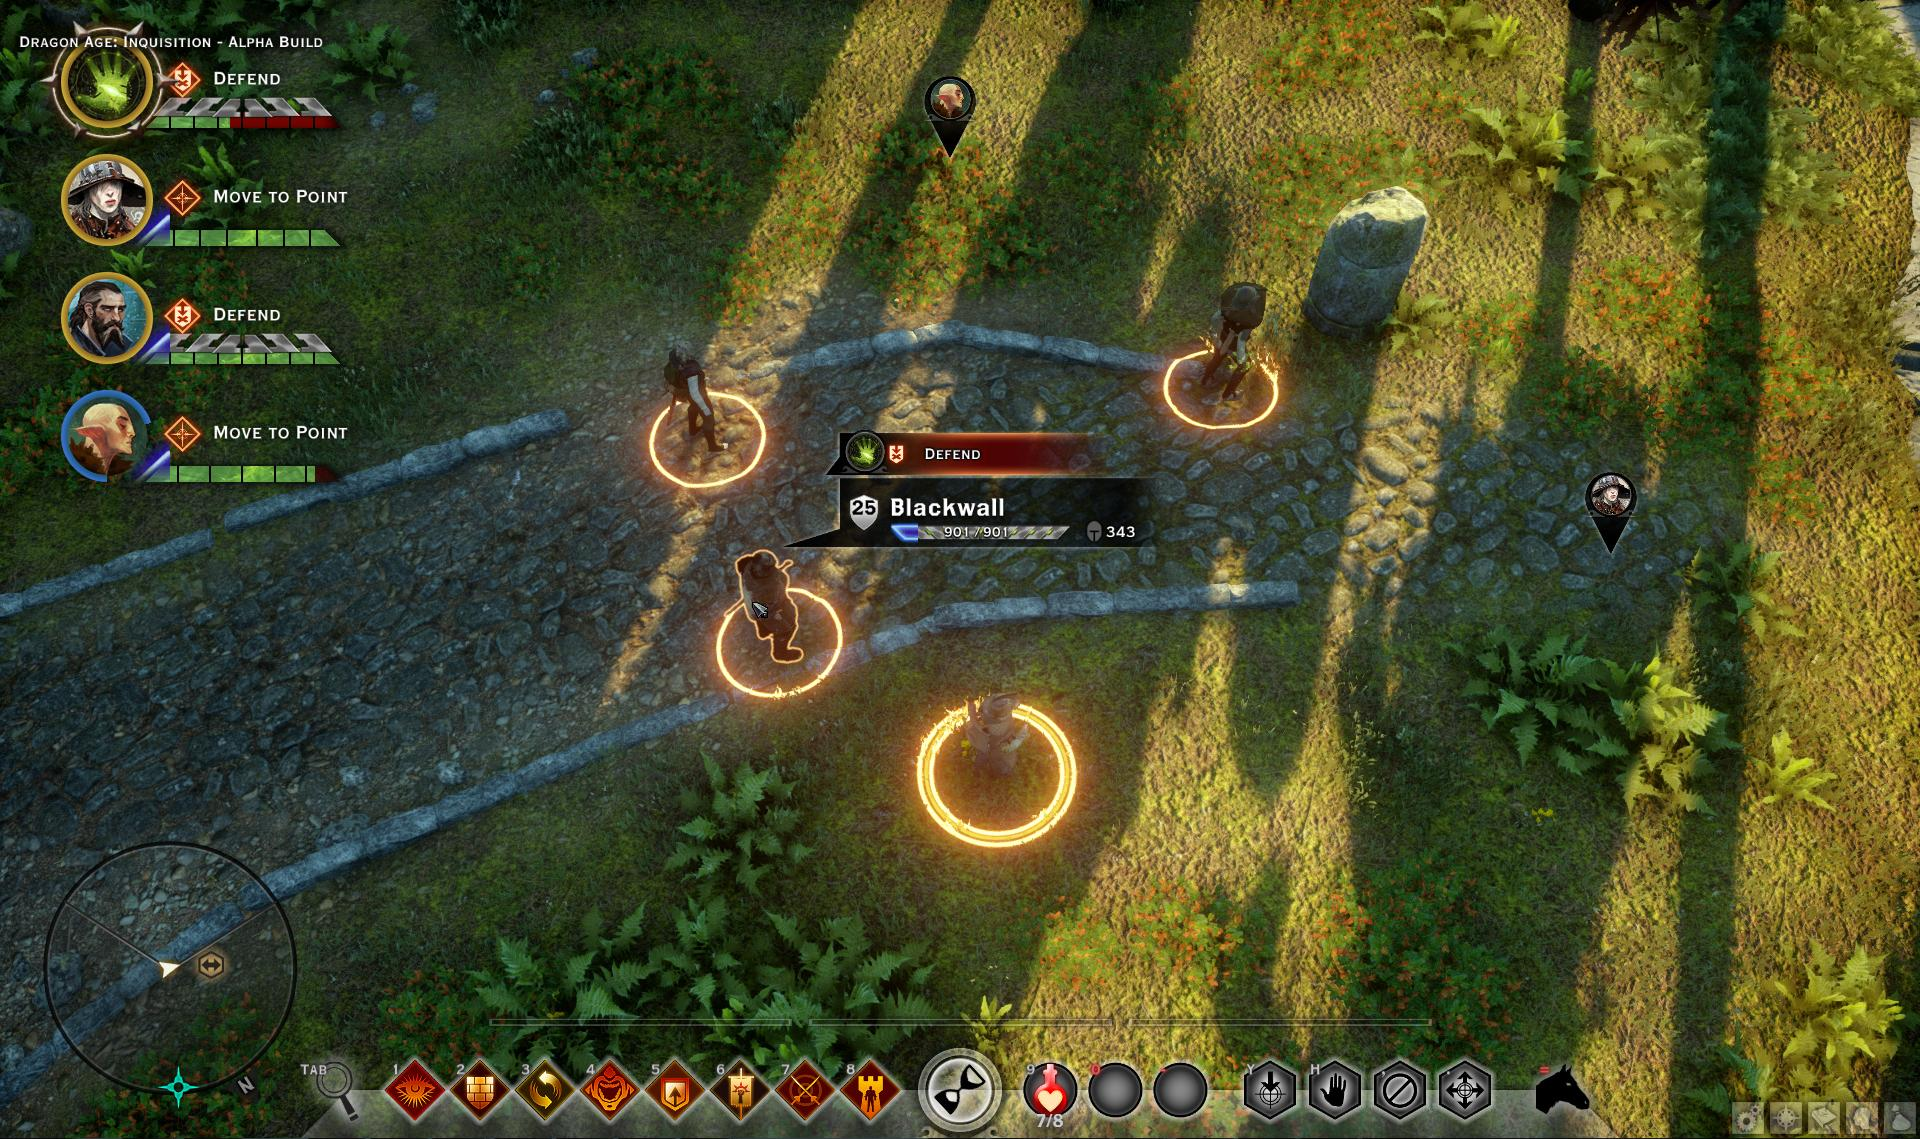 http://www.pcgames.de/screenshots/original/2014/08/dragon-age-inquisition-pc-ui-pc-games.jpg